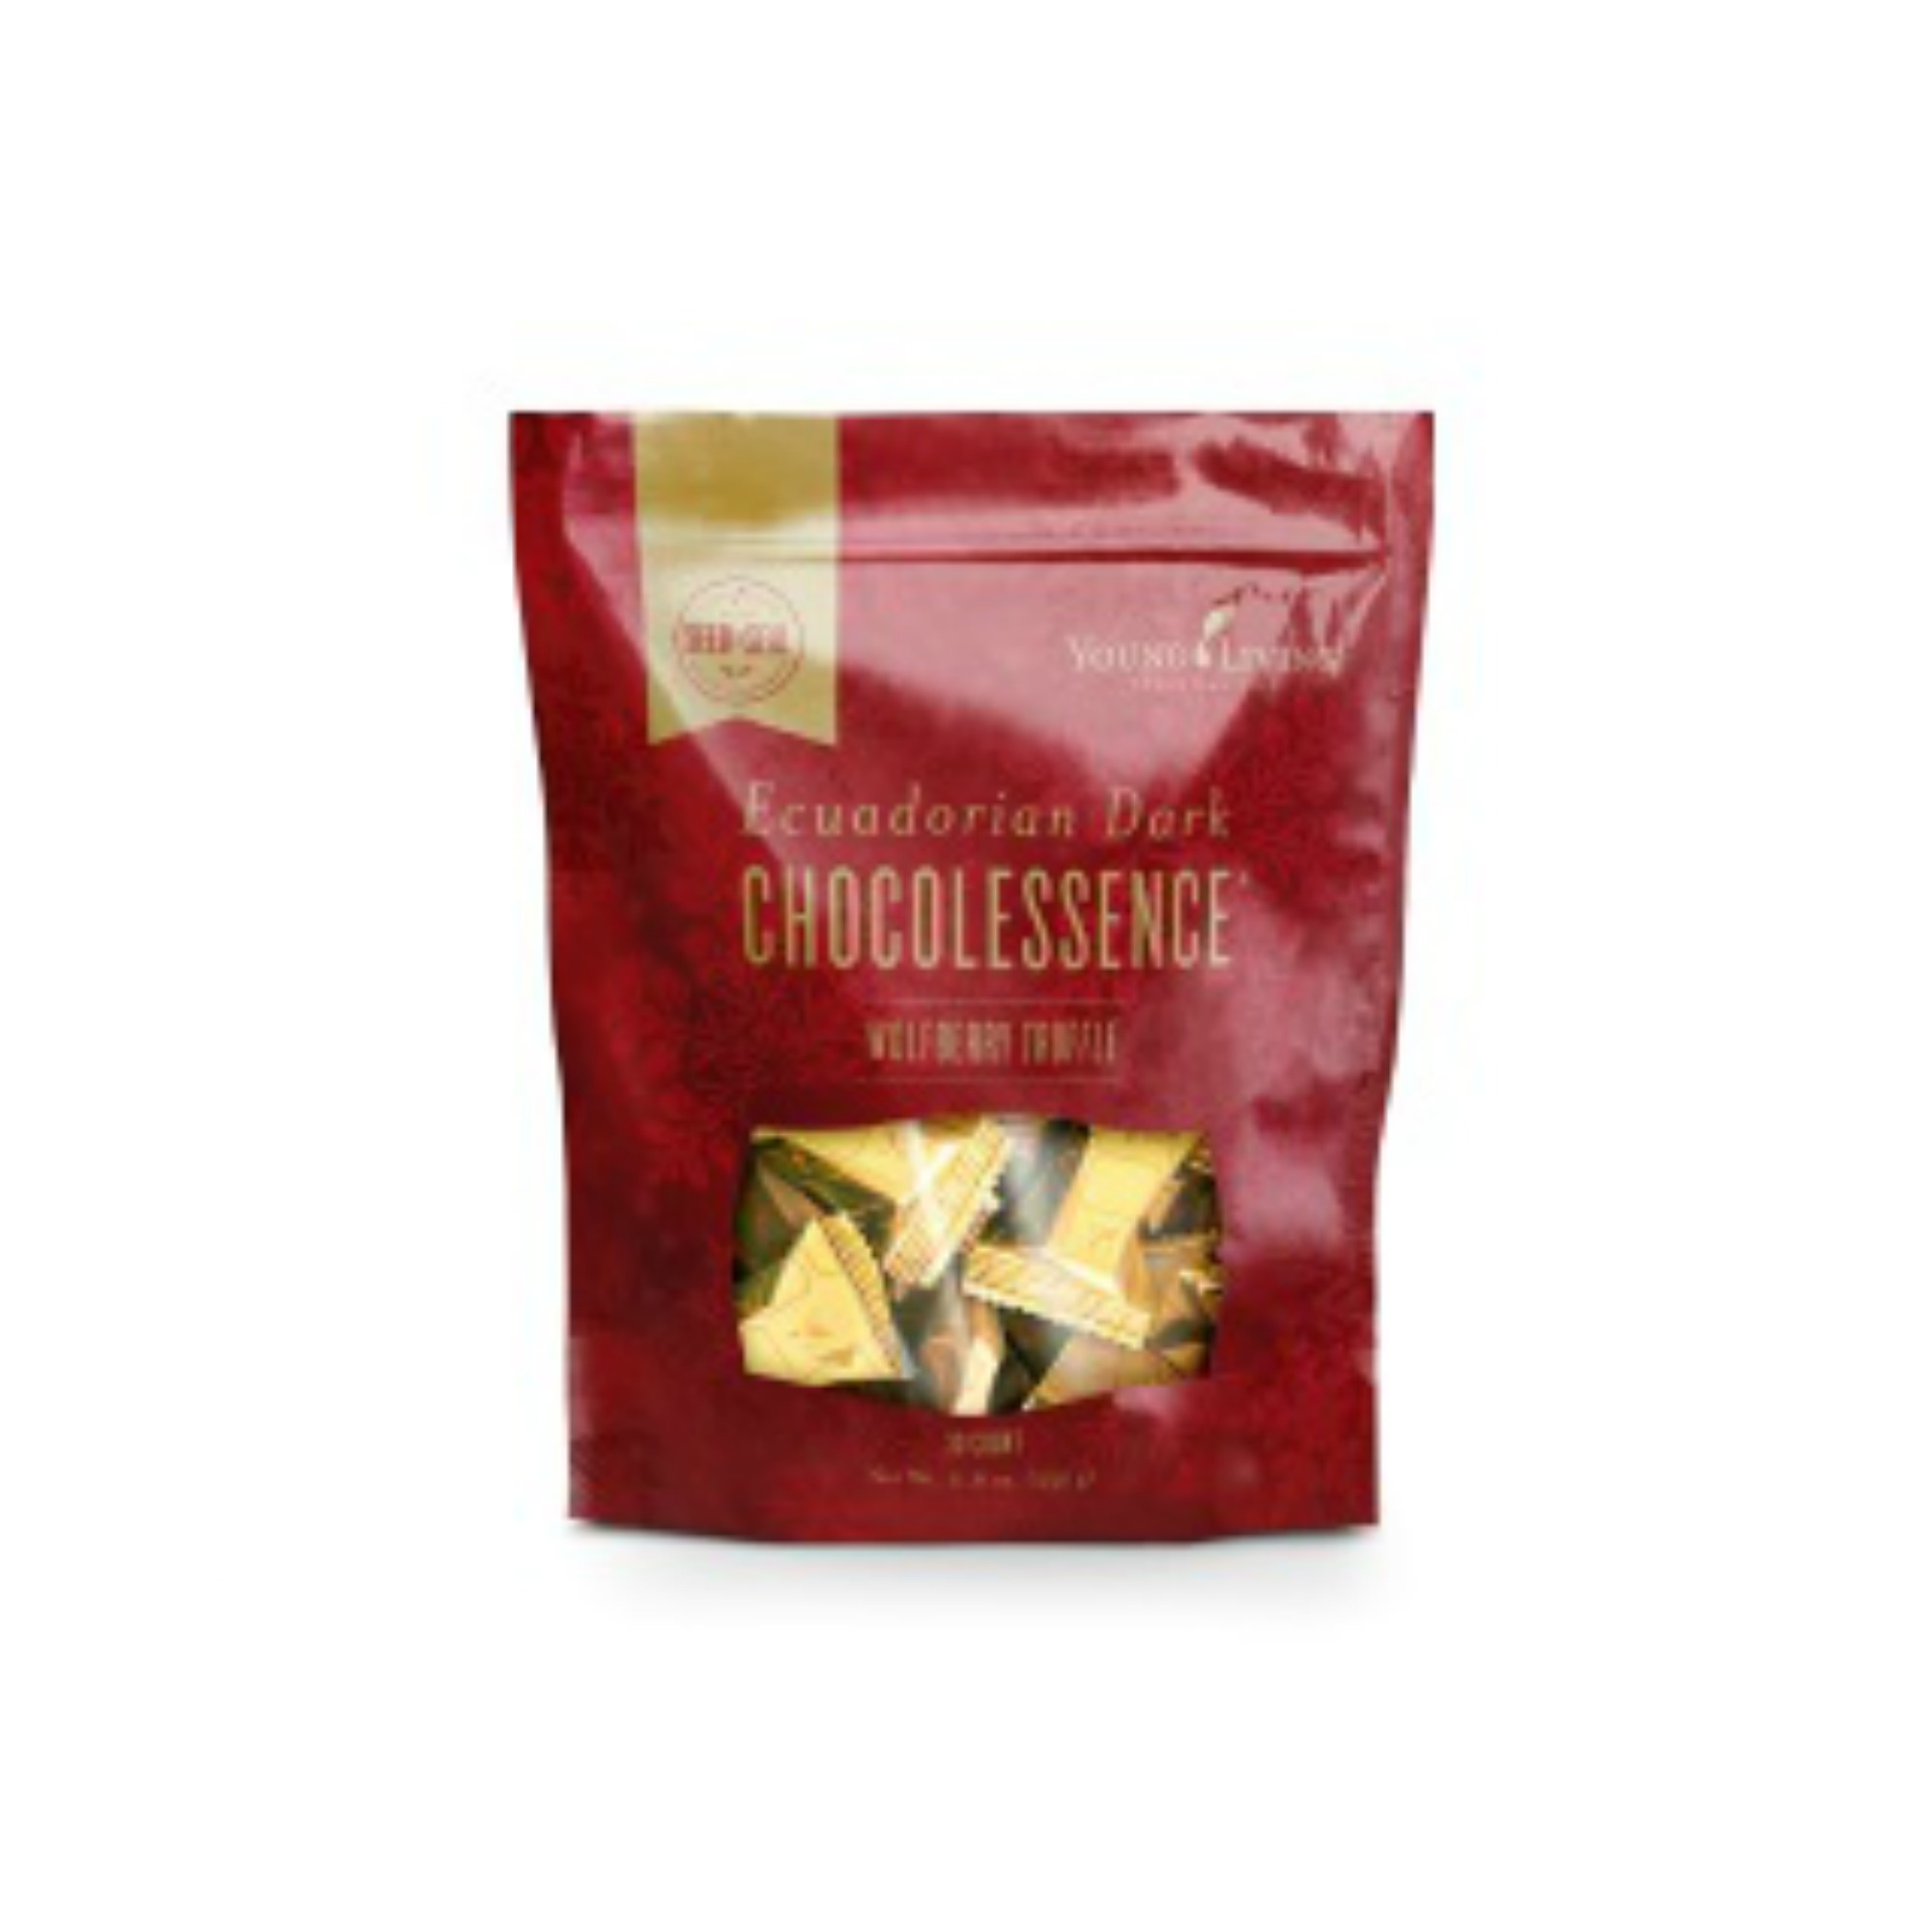 CHOCOLESSENCE WOLFBERRY TRUFFLE    Time to indulge! These decadent truffles combine the subtle, dark, complex flavors of our exclusively sourced Ecuadorian Nacional beans with the fruity tang of Ningxia wolfberries. Savor your holiday season with this exceptionally bold, bite-sized masterpiece, or enjoy this sweet snack after a nutritious meal.   Click here   to learn more about this product.